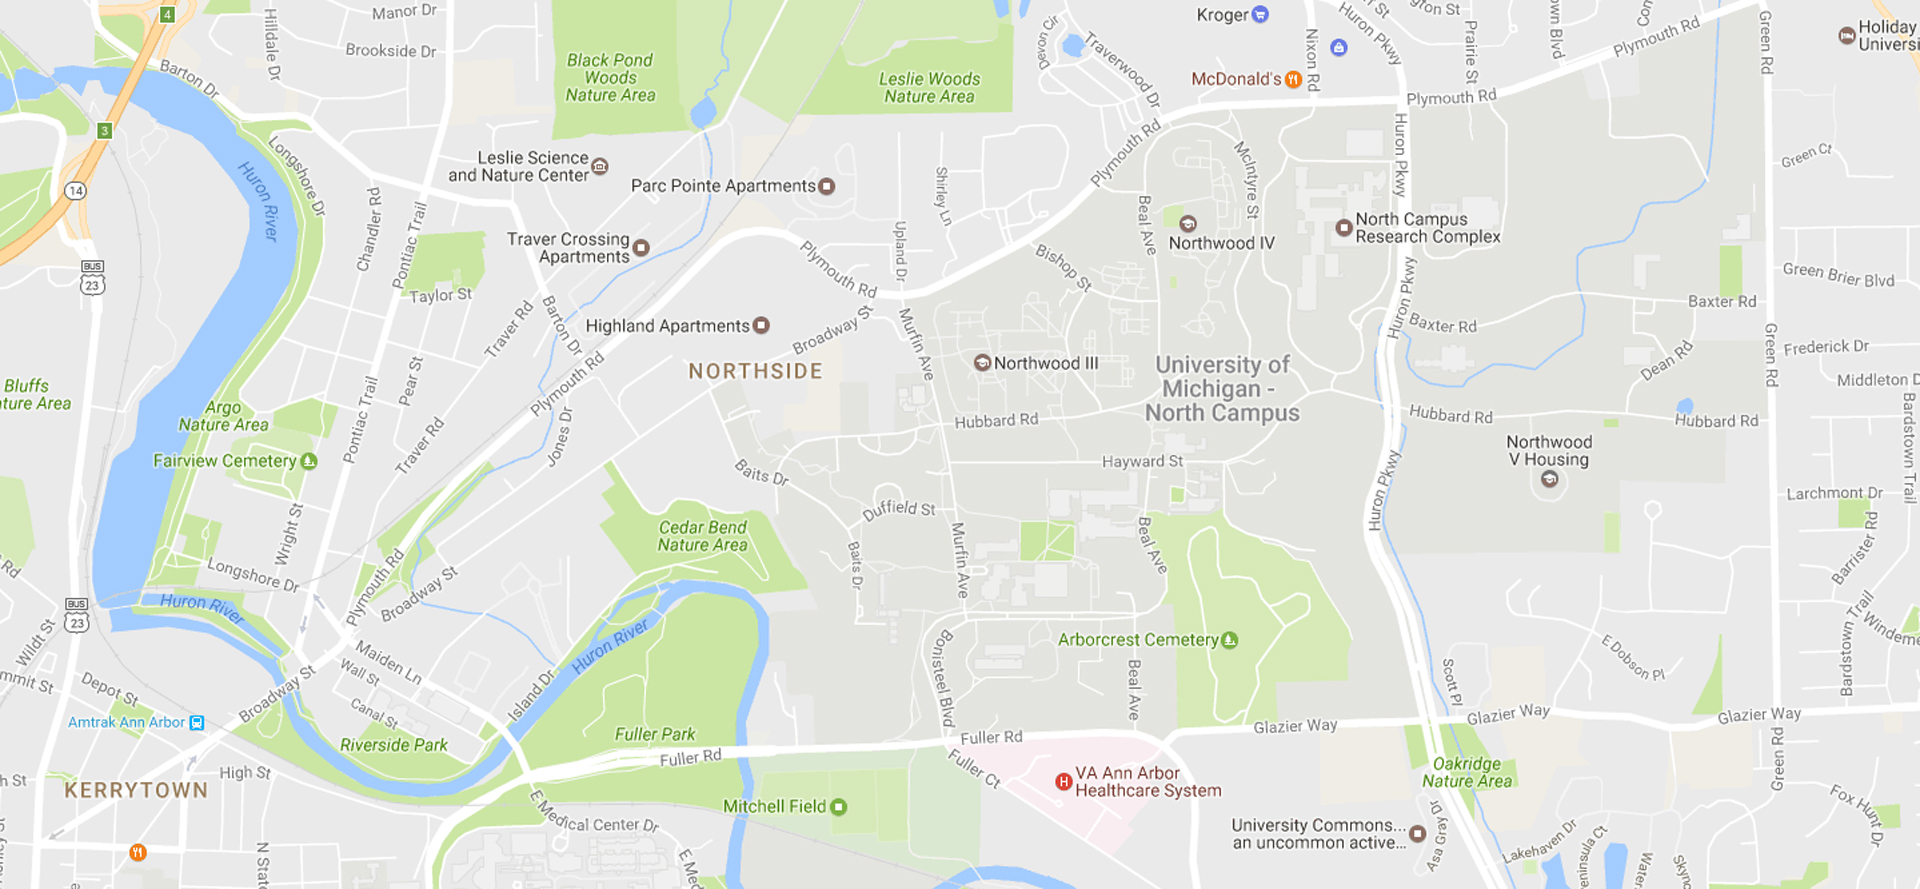 How to pin a pile of addresses onto a Google map | Network